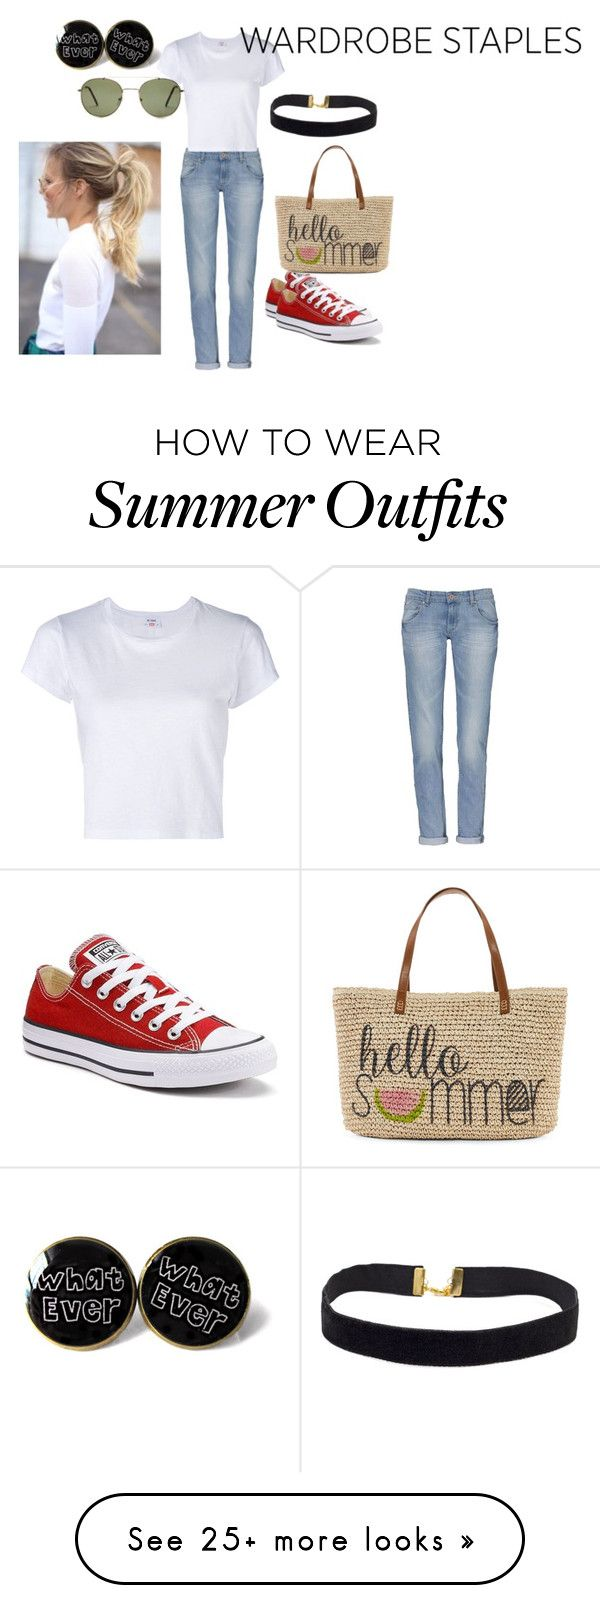 """""""My Weekend Outfit"""" by faeryrain on Polyvore featuring RE/DONE, Converse, Forever 21, Straw Studios and WardrobeStaples"""